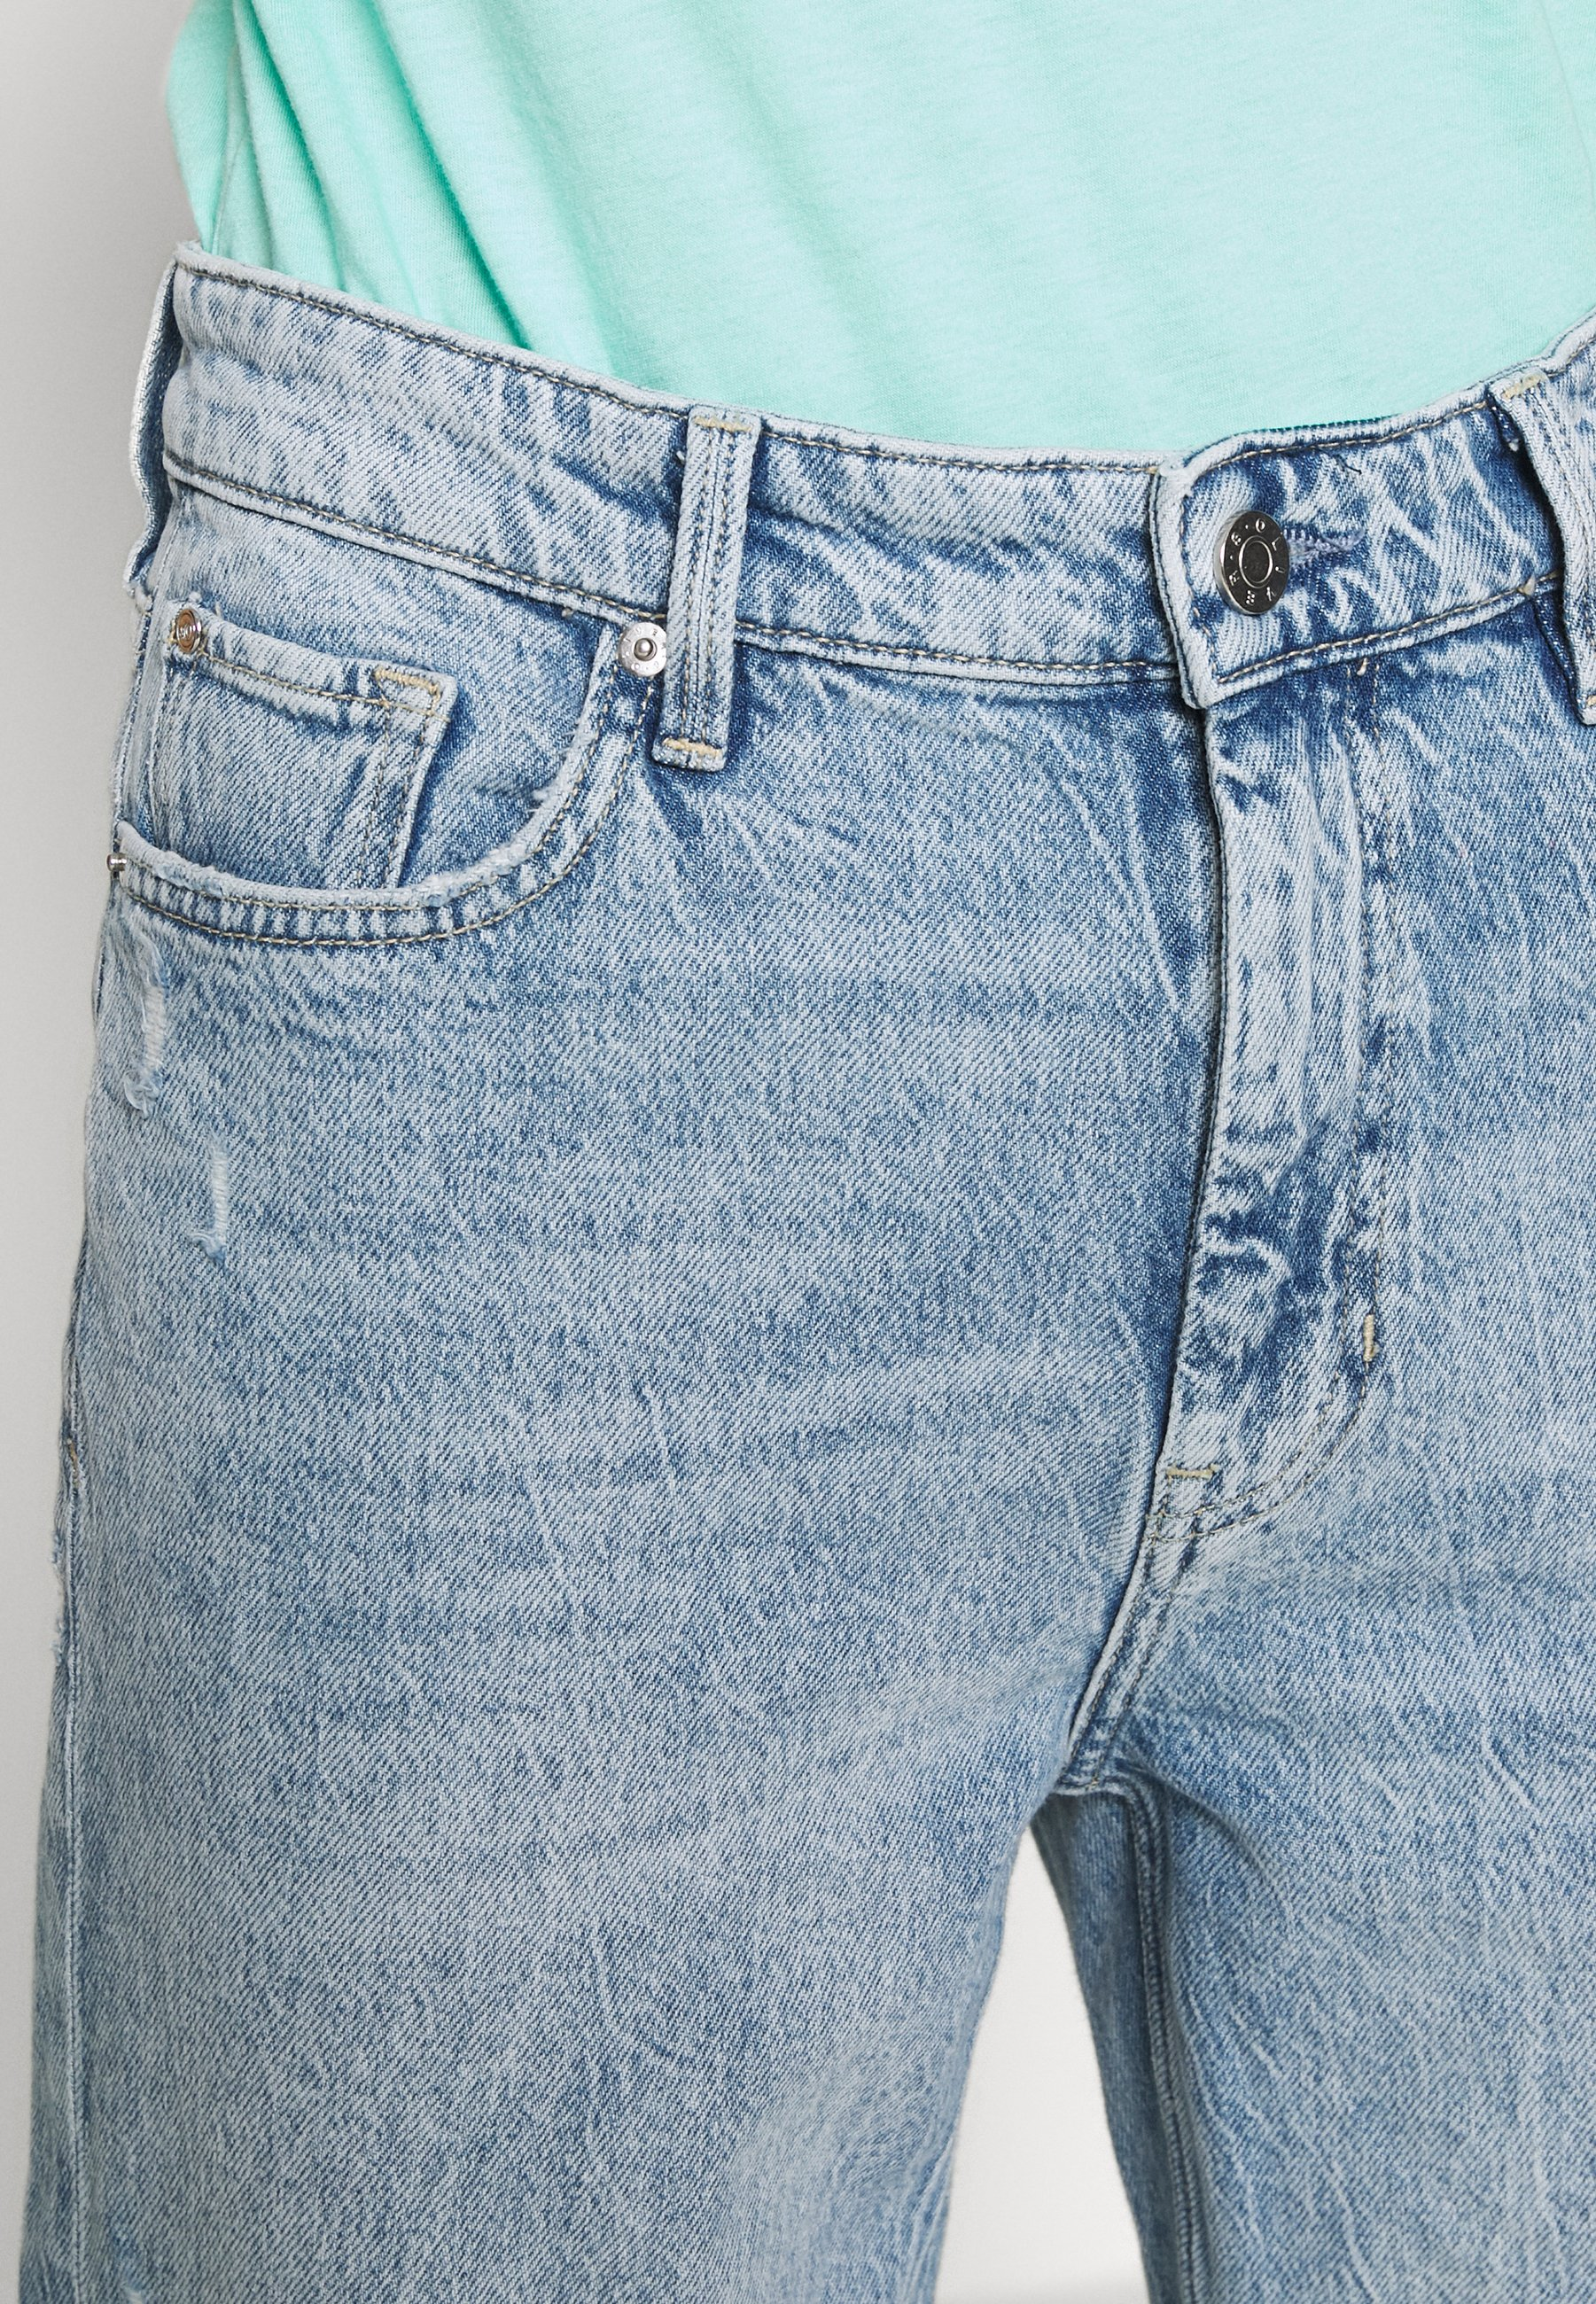 S.oliver Jeans Relaxed Fit - Soft Blue Denim